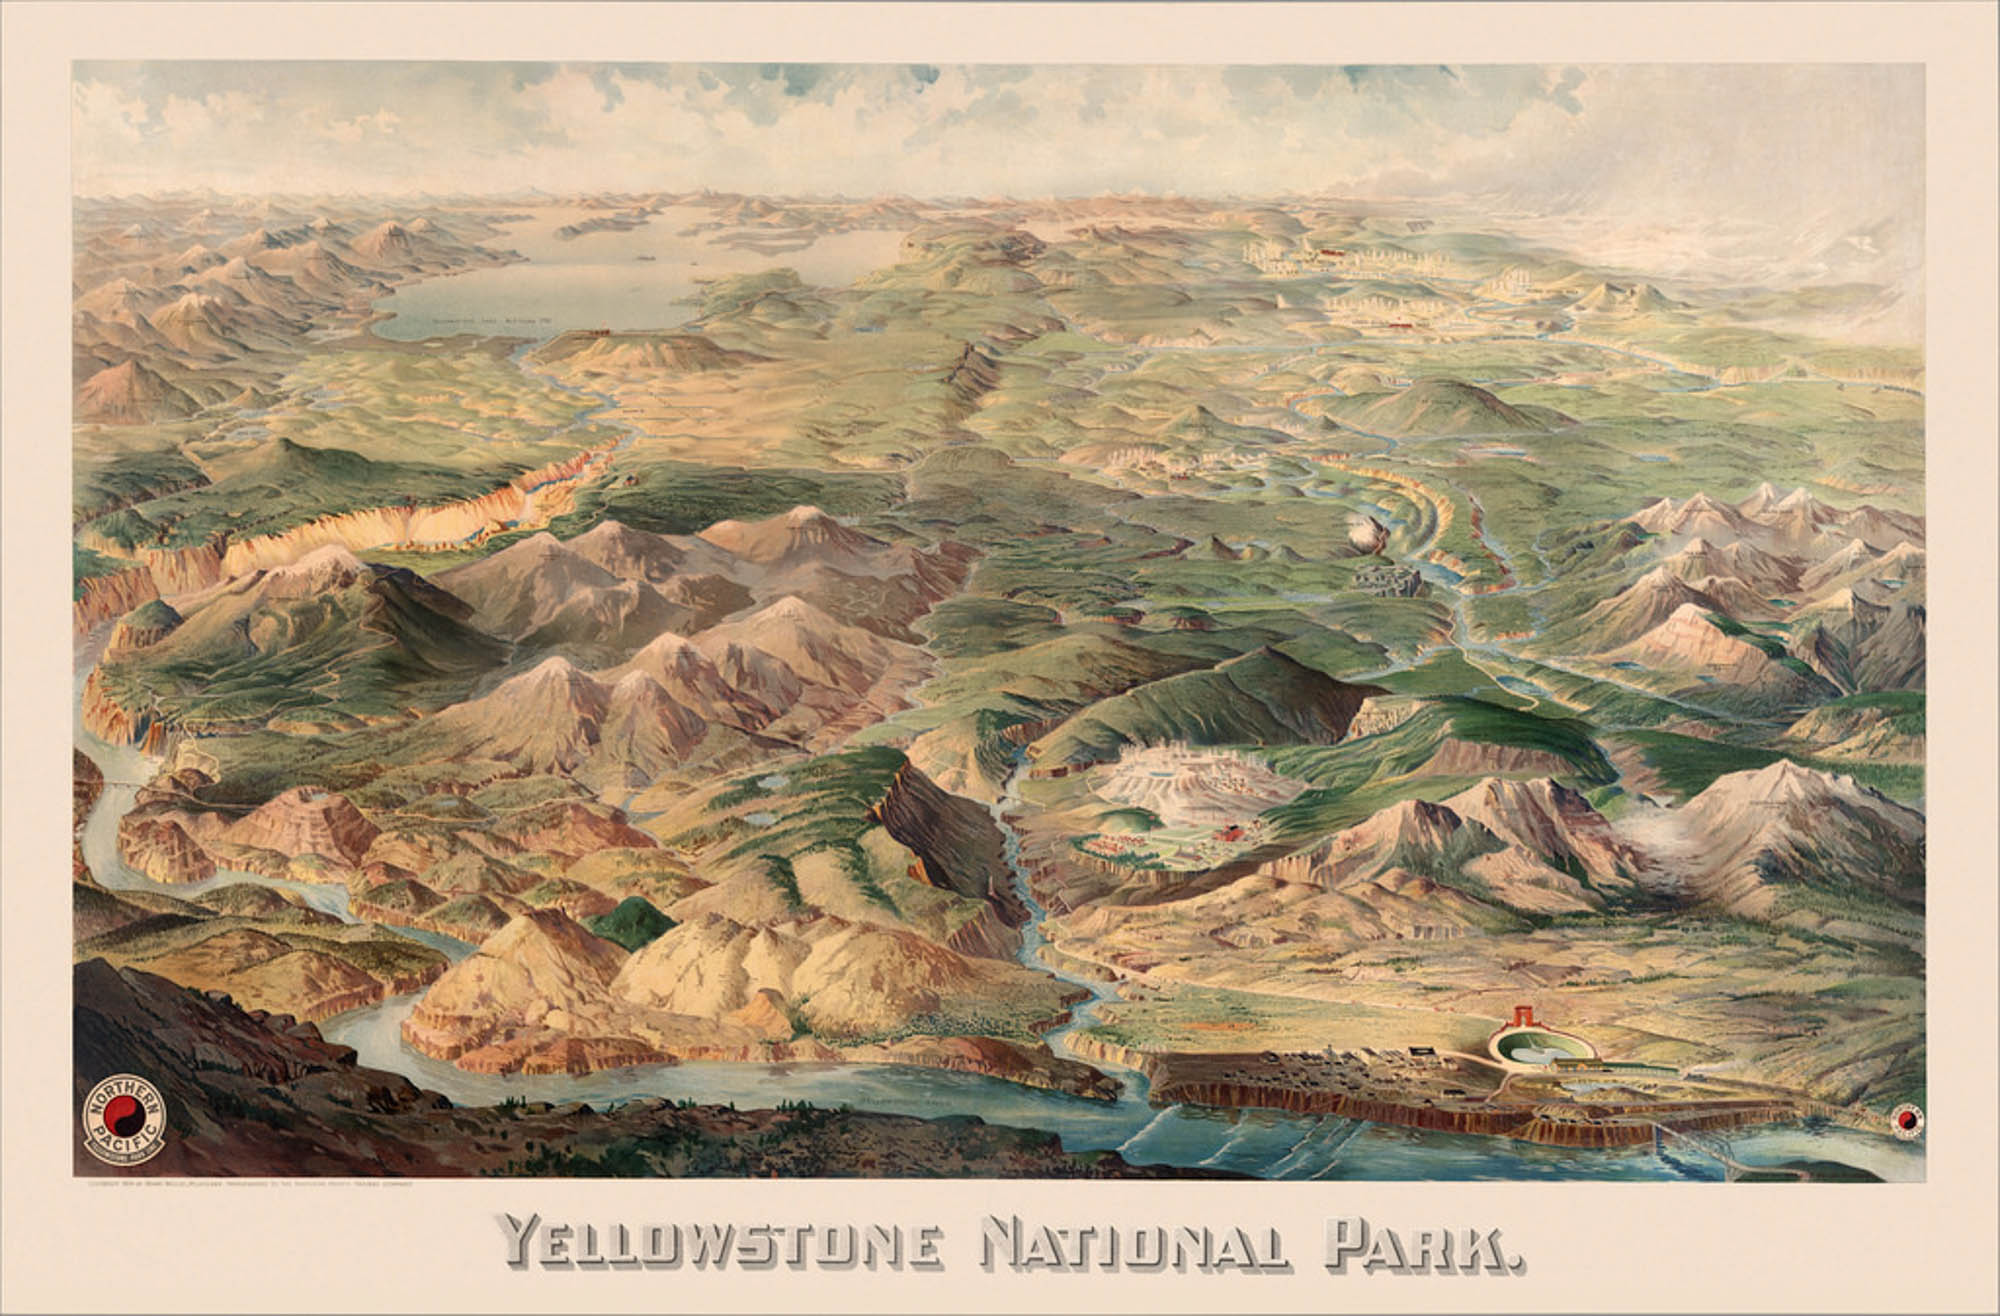 Yellowstone National Park, 1904 America's oldest National Park, and the first National Park in the world, Yellowstone to this day attracts millions of visitors each year. This beautifully hand-drawn map provides a birds-eyes view of the park and the cities and towns surrounding it.